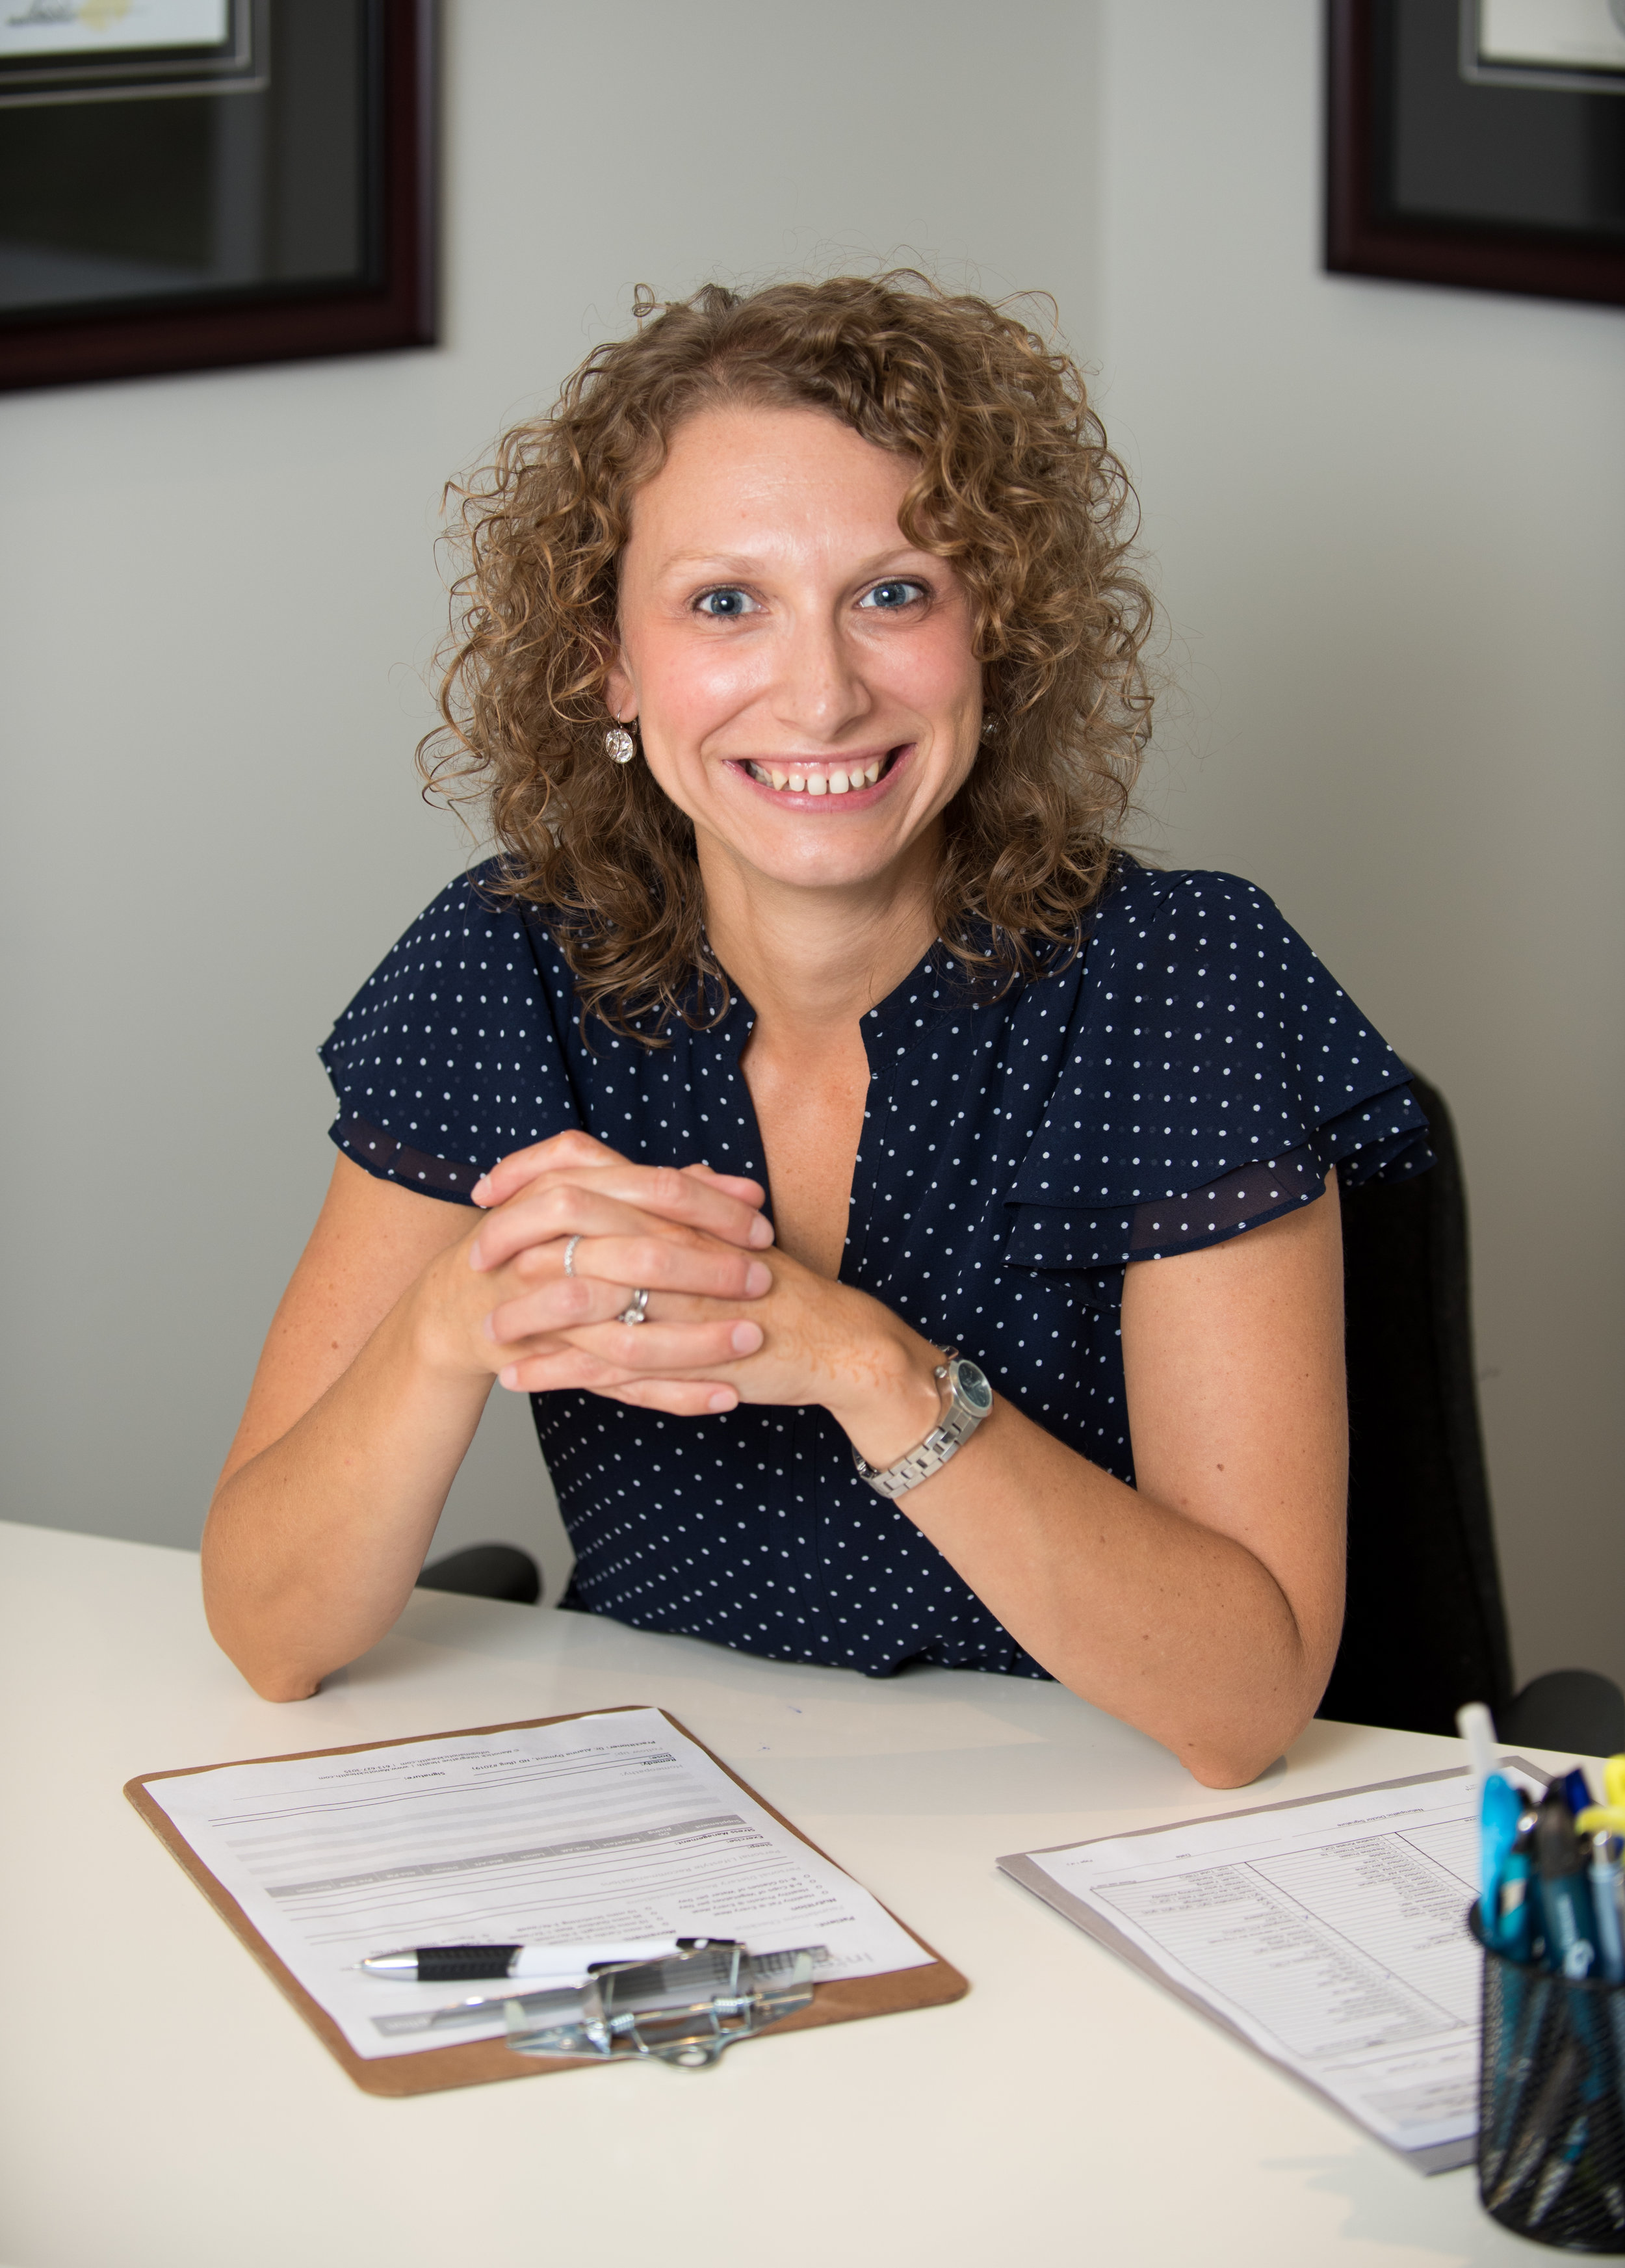 Dr. Alanna DymentNaturopathic Doctor - Book an Appointment »